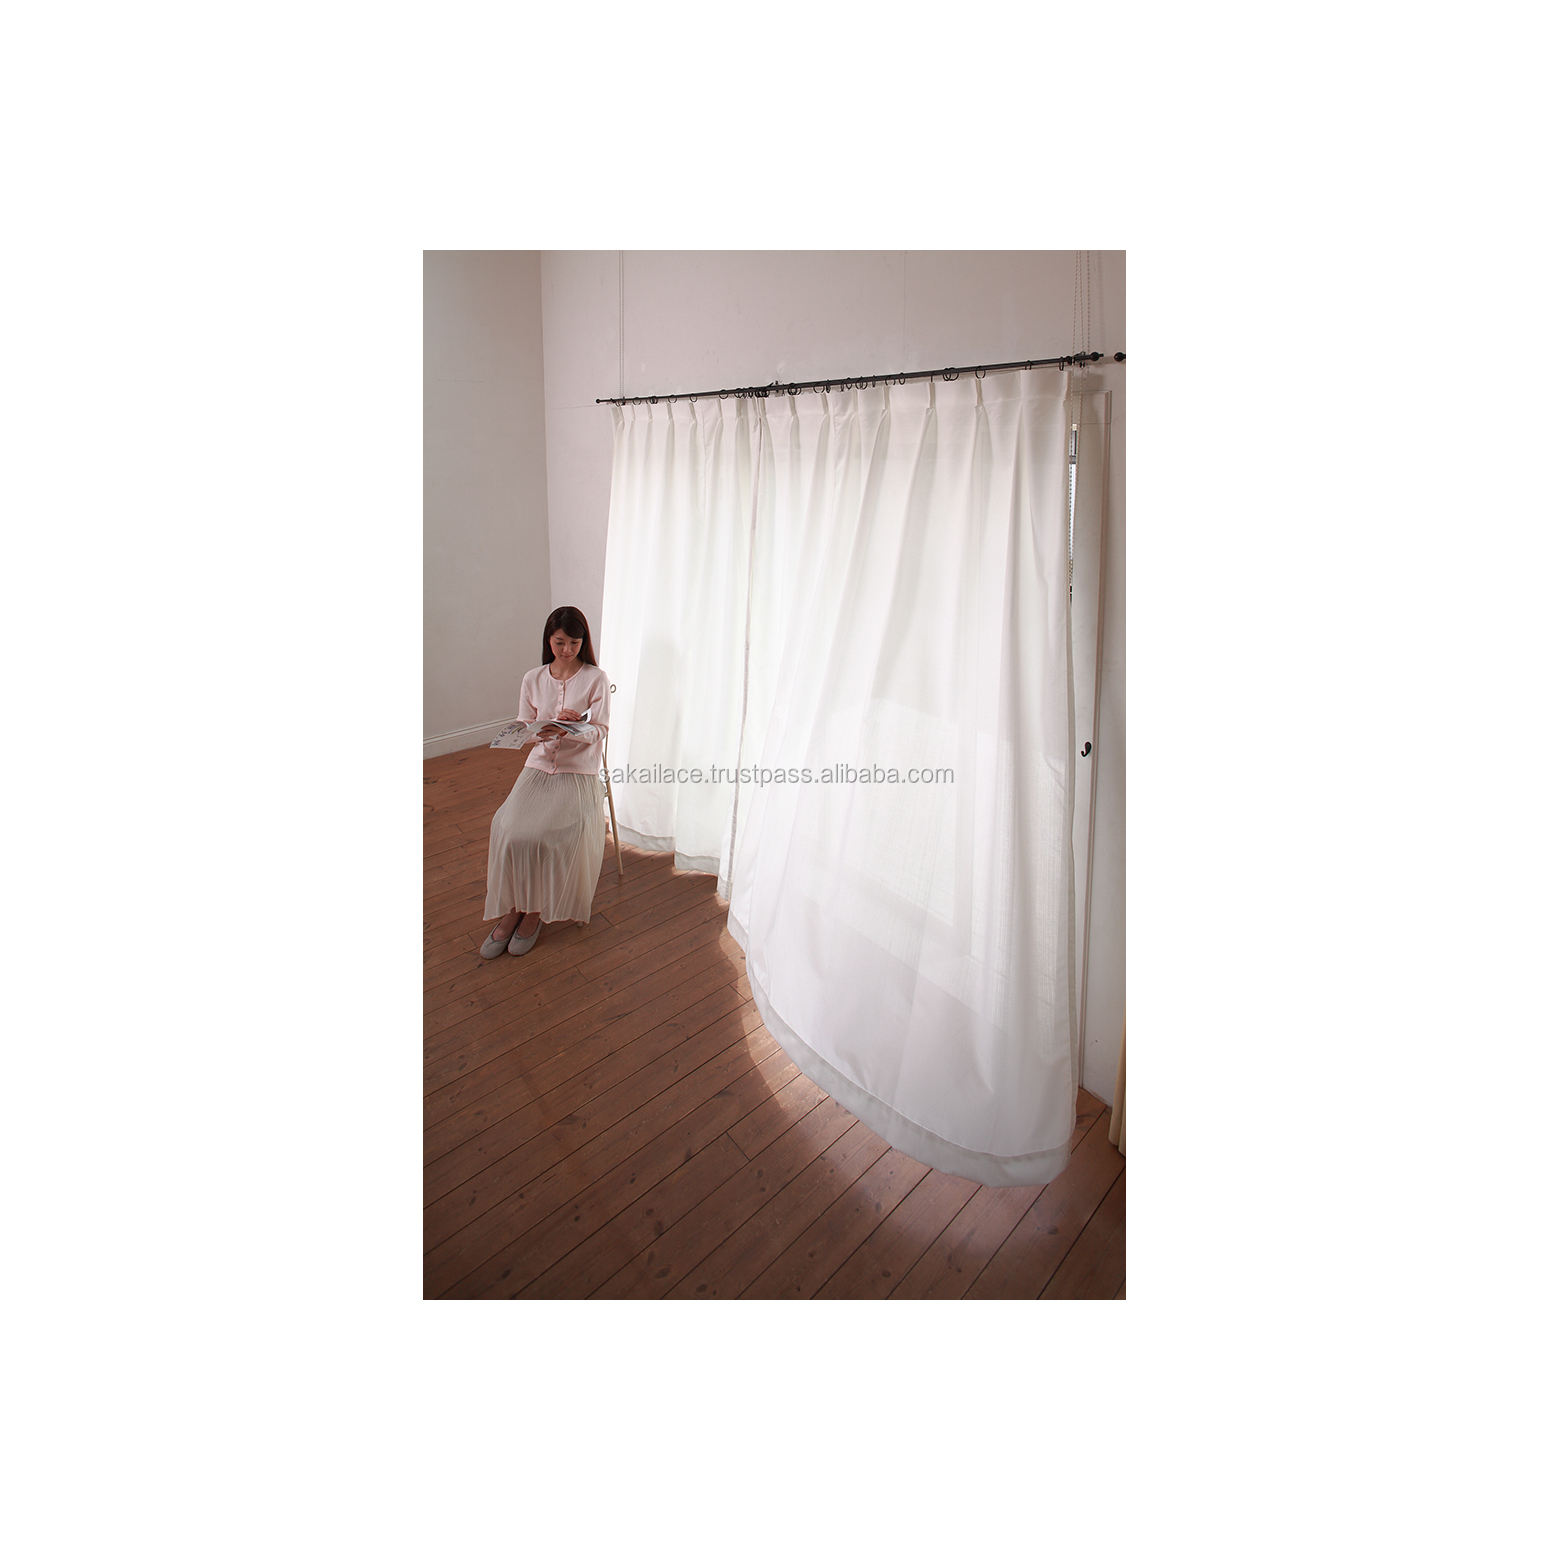 canopy bed curtain medical curtain screen hospital bed curtain